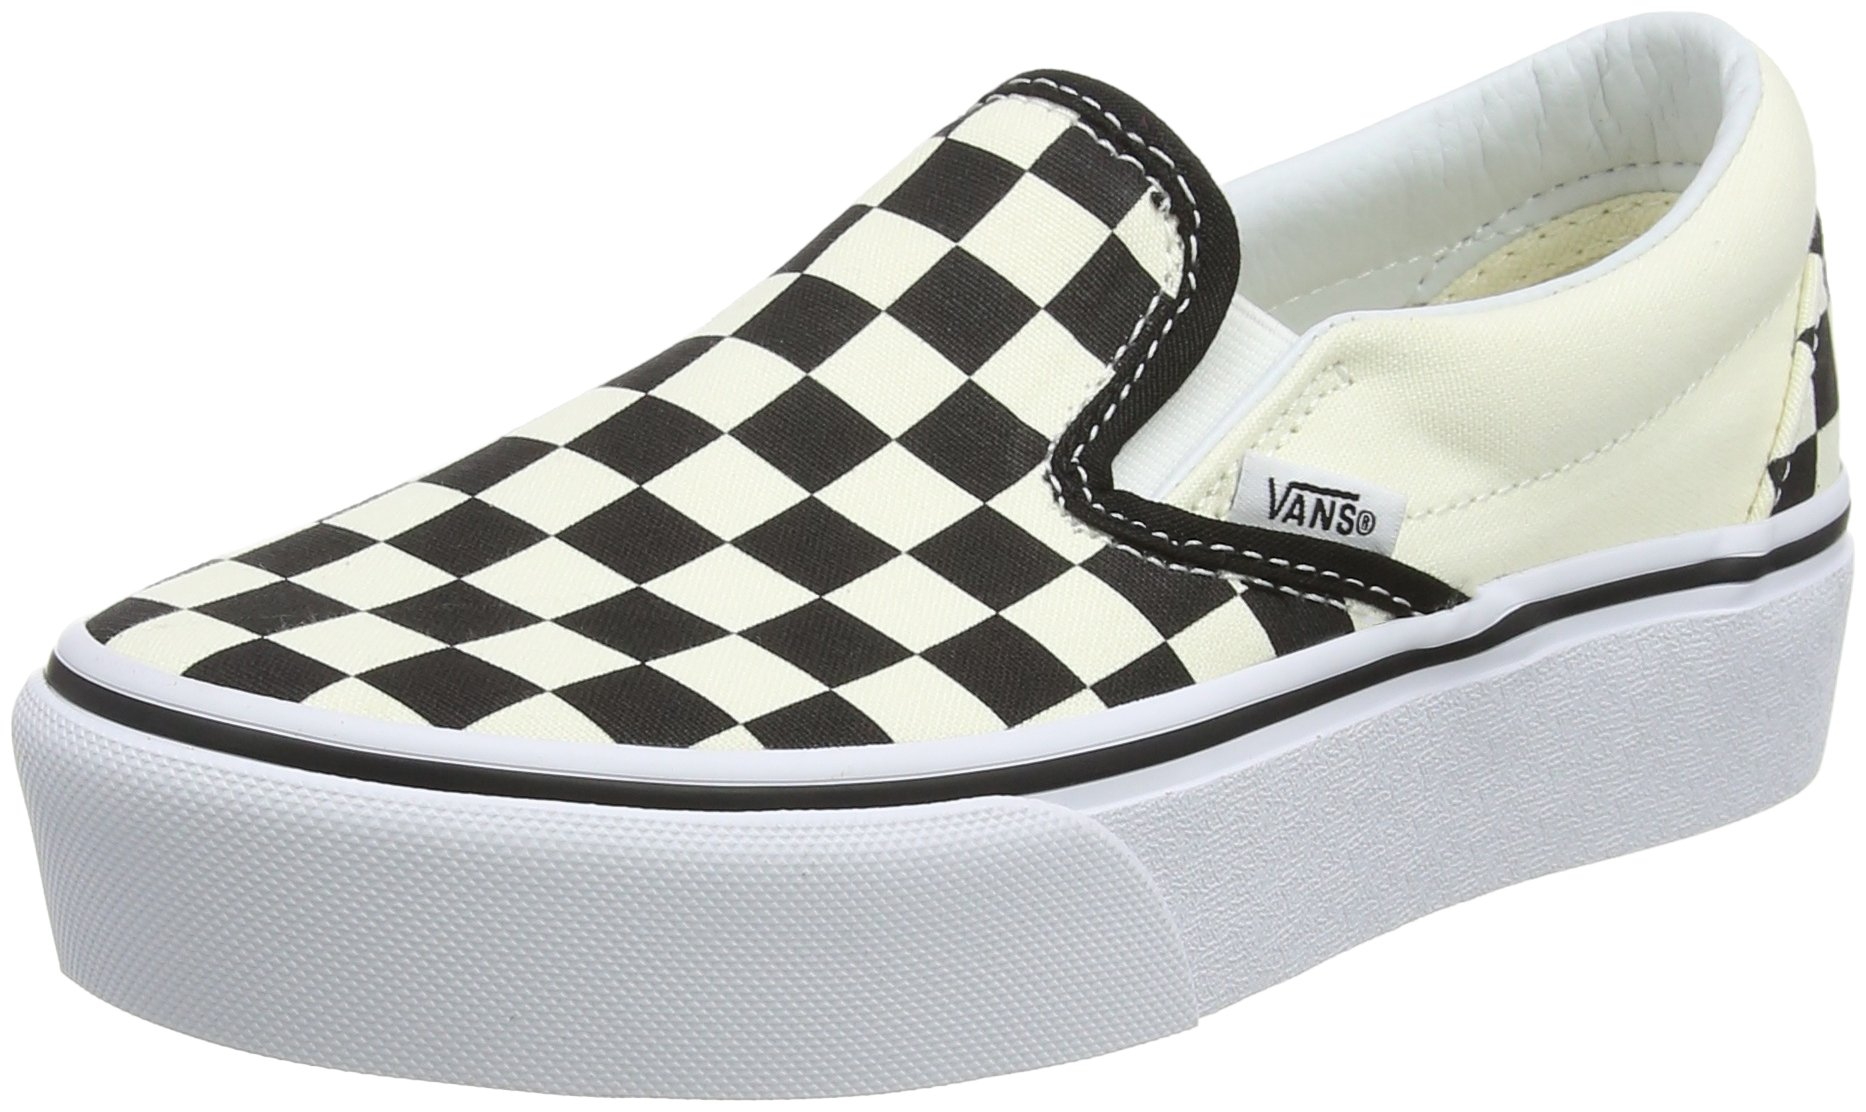 Vans Classic Slip-on Platform, Women's Slip On Trainers - 710pvzvlYPL - Vans Classic Slip-on Platform, Women's Slip On Trainers